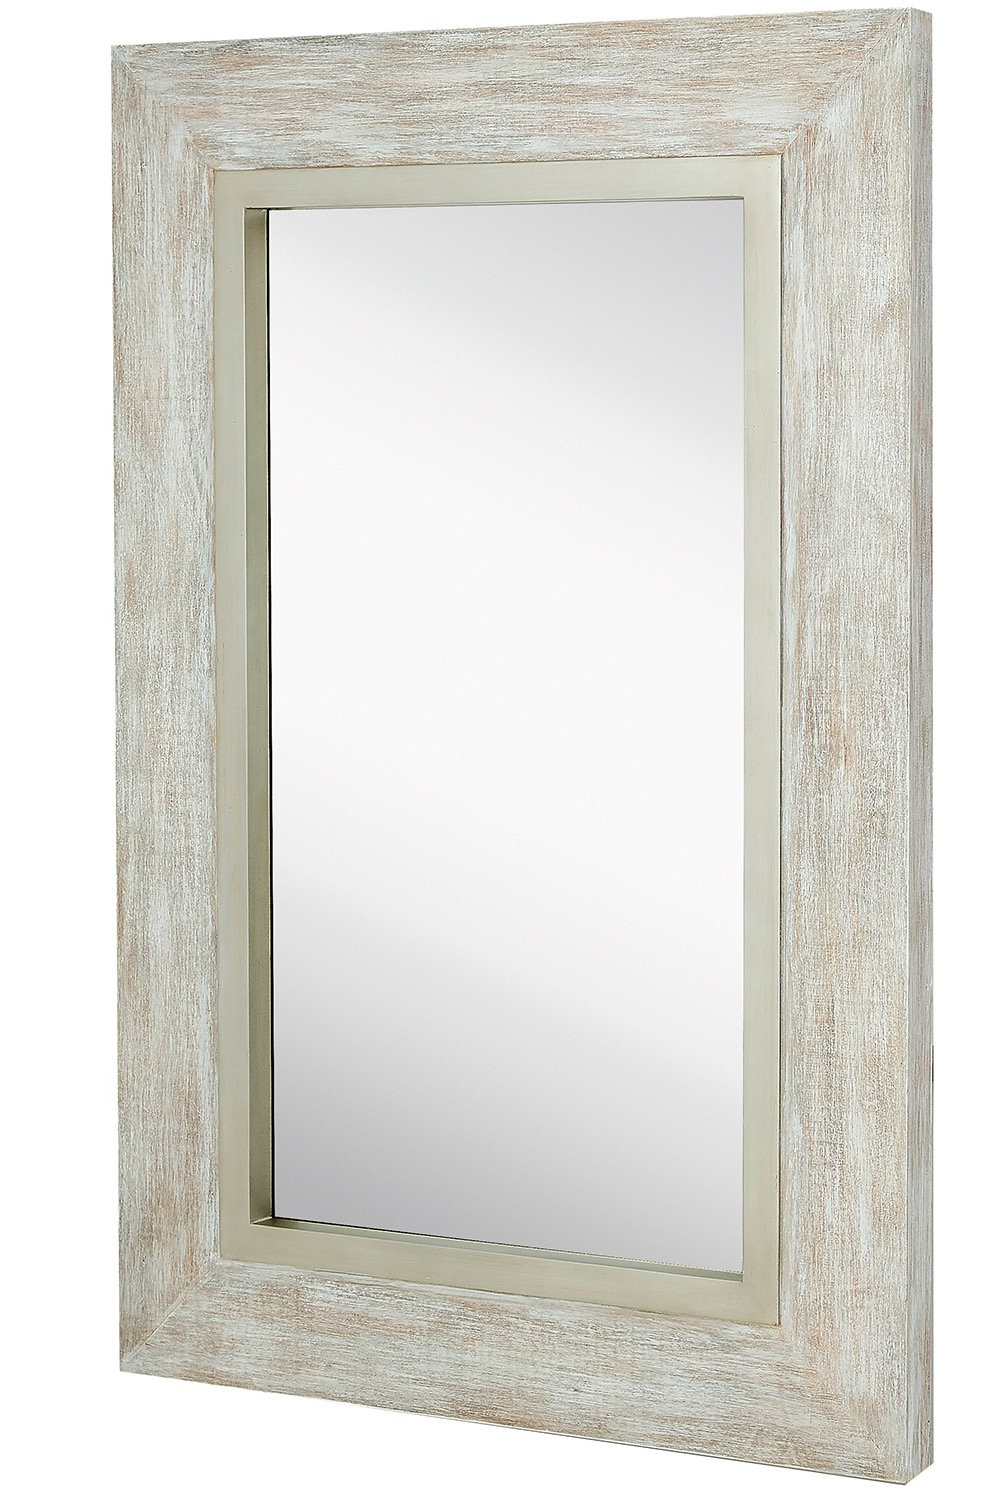 Glass Wall Mirrors With Regard To Most Recent Hamilton Hills Large White Washed Framed Mirror (View 16 of 20)